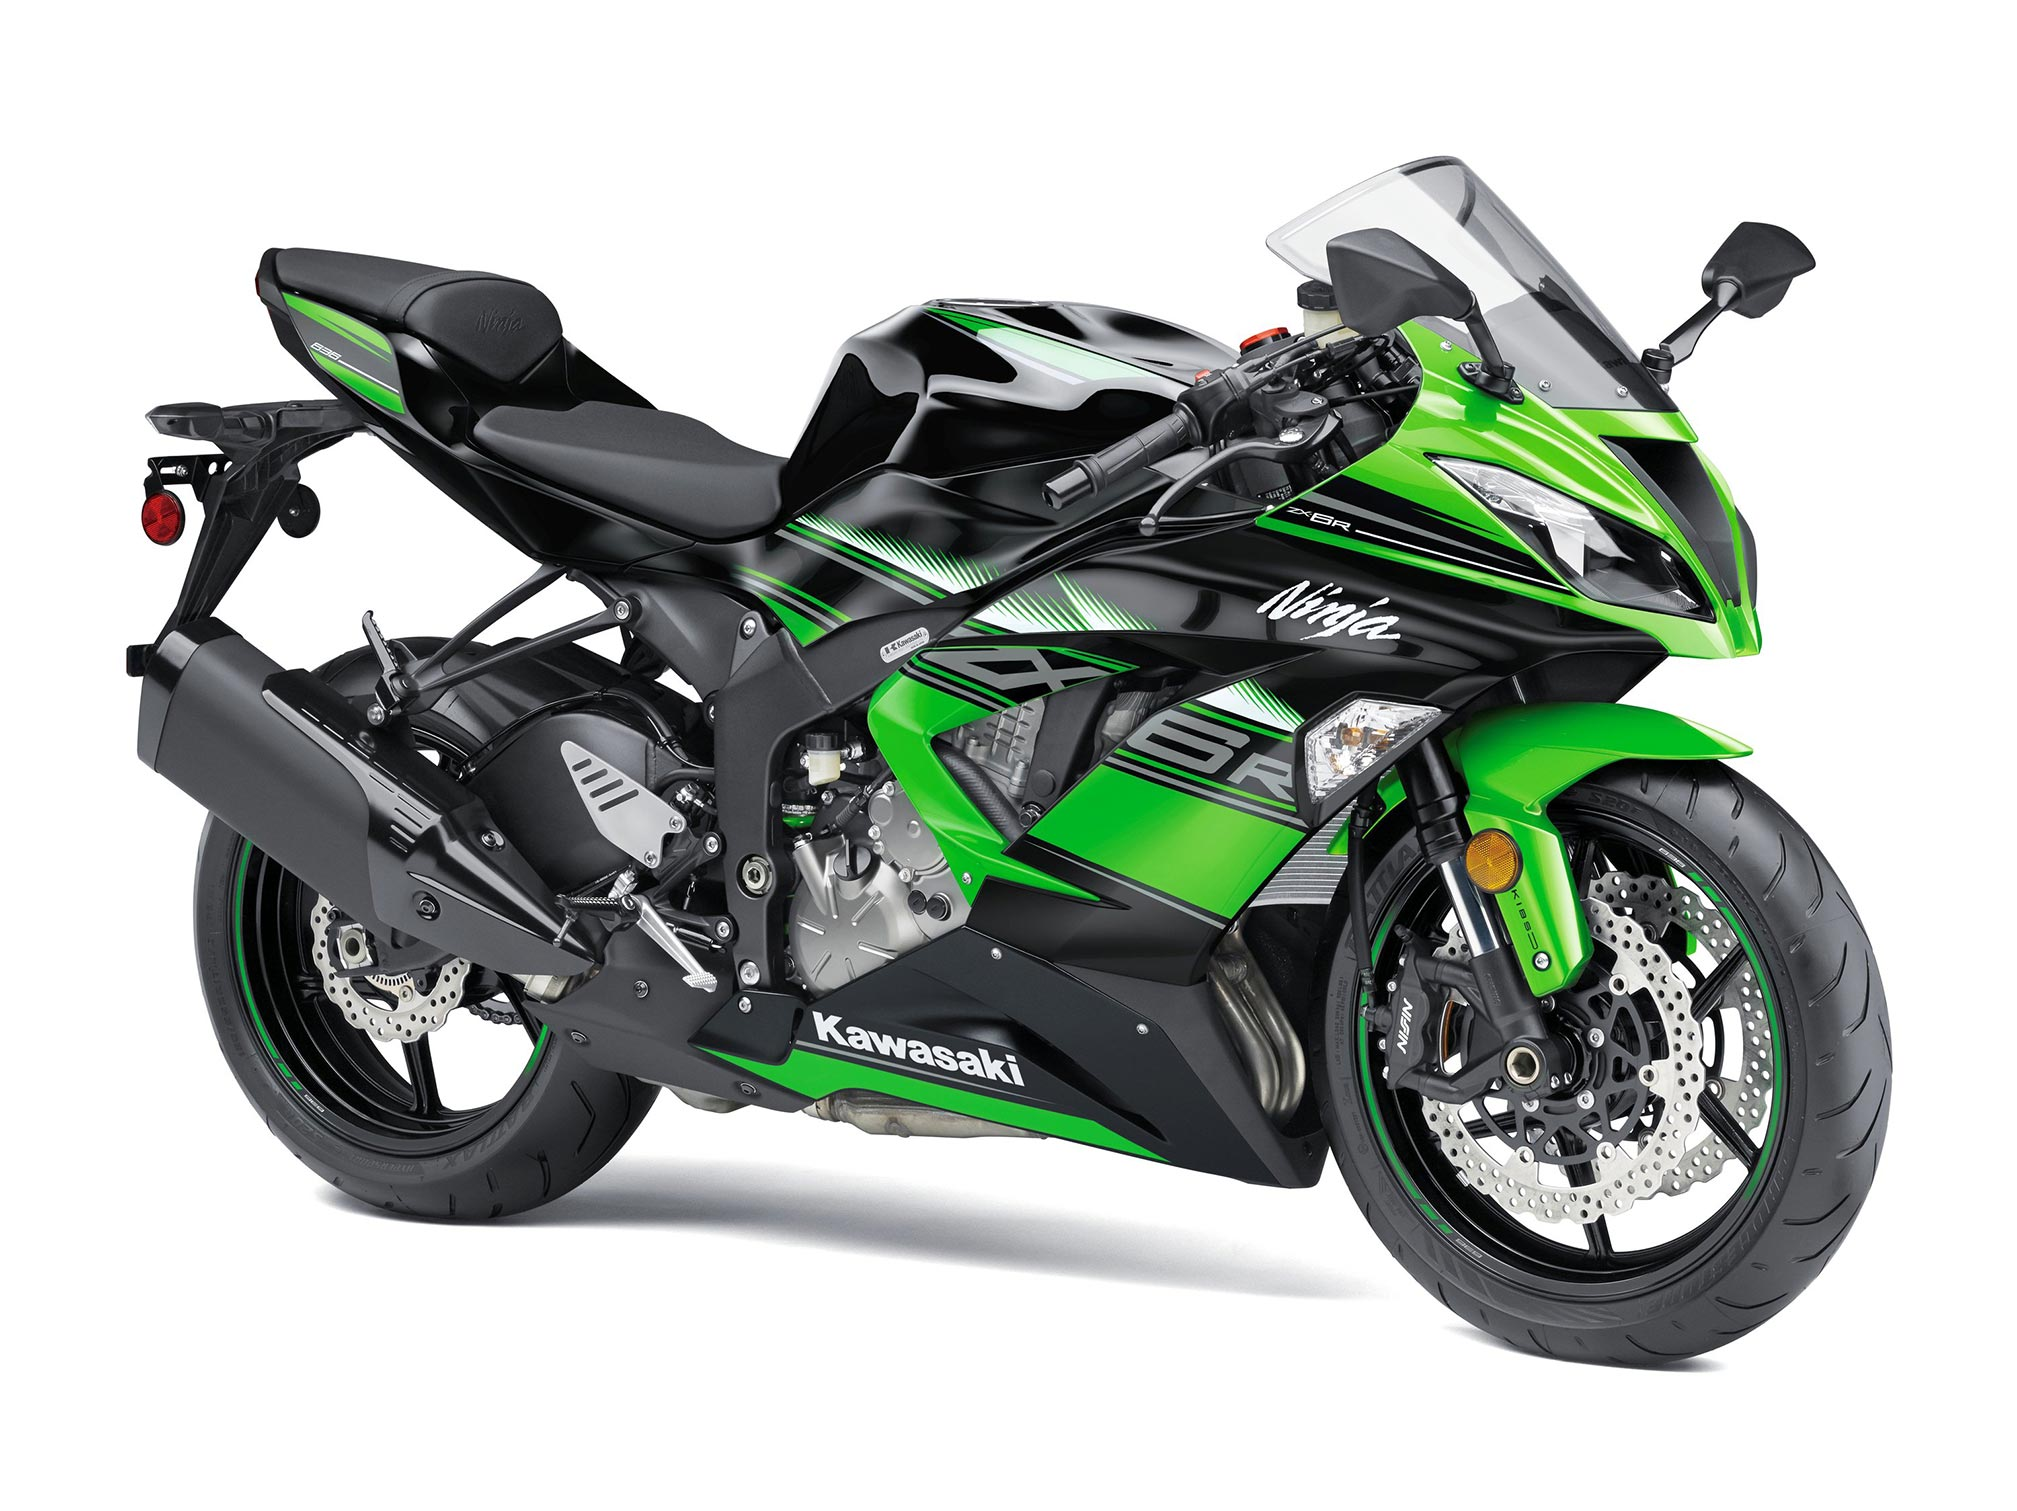 2017 kawasaki ninja zx 6r krt review. Black Bedroom Furniture Sets. Home Design Ideas